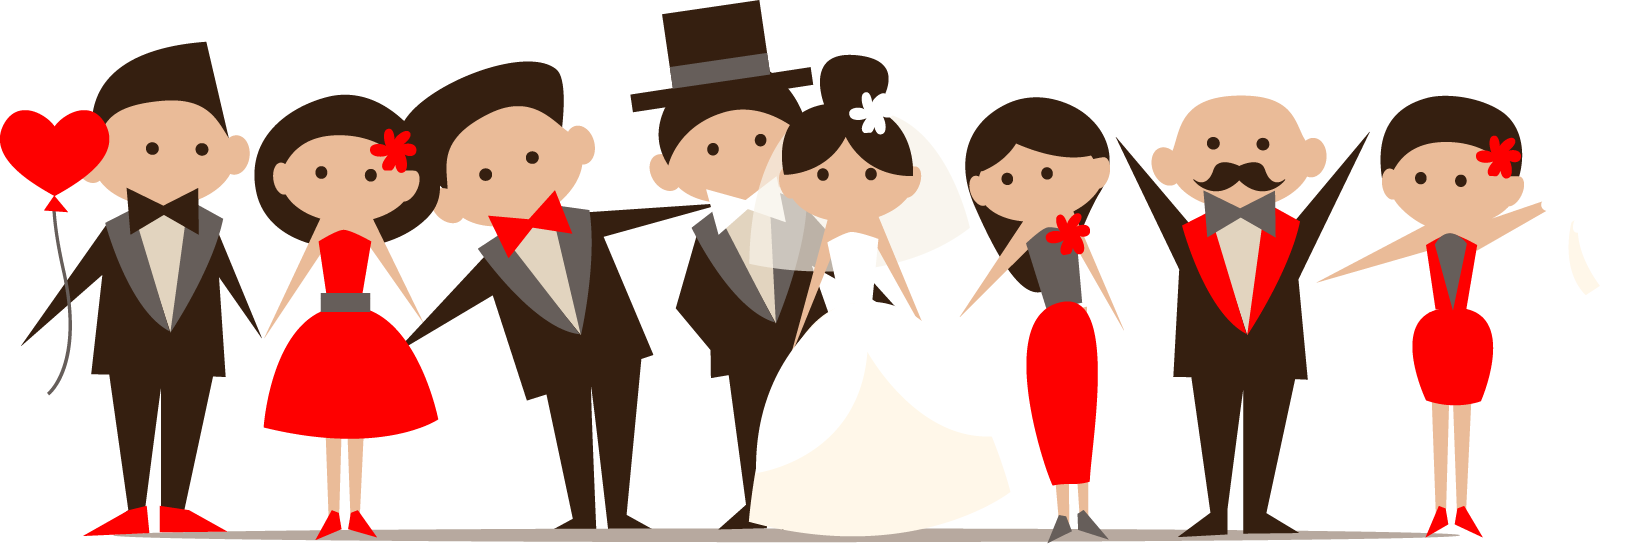 Png transparent free images. Person clipart wedding